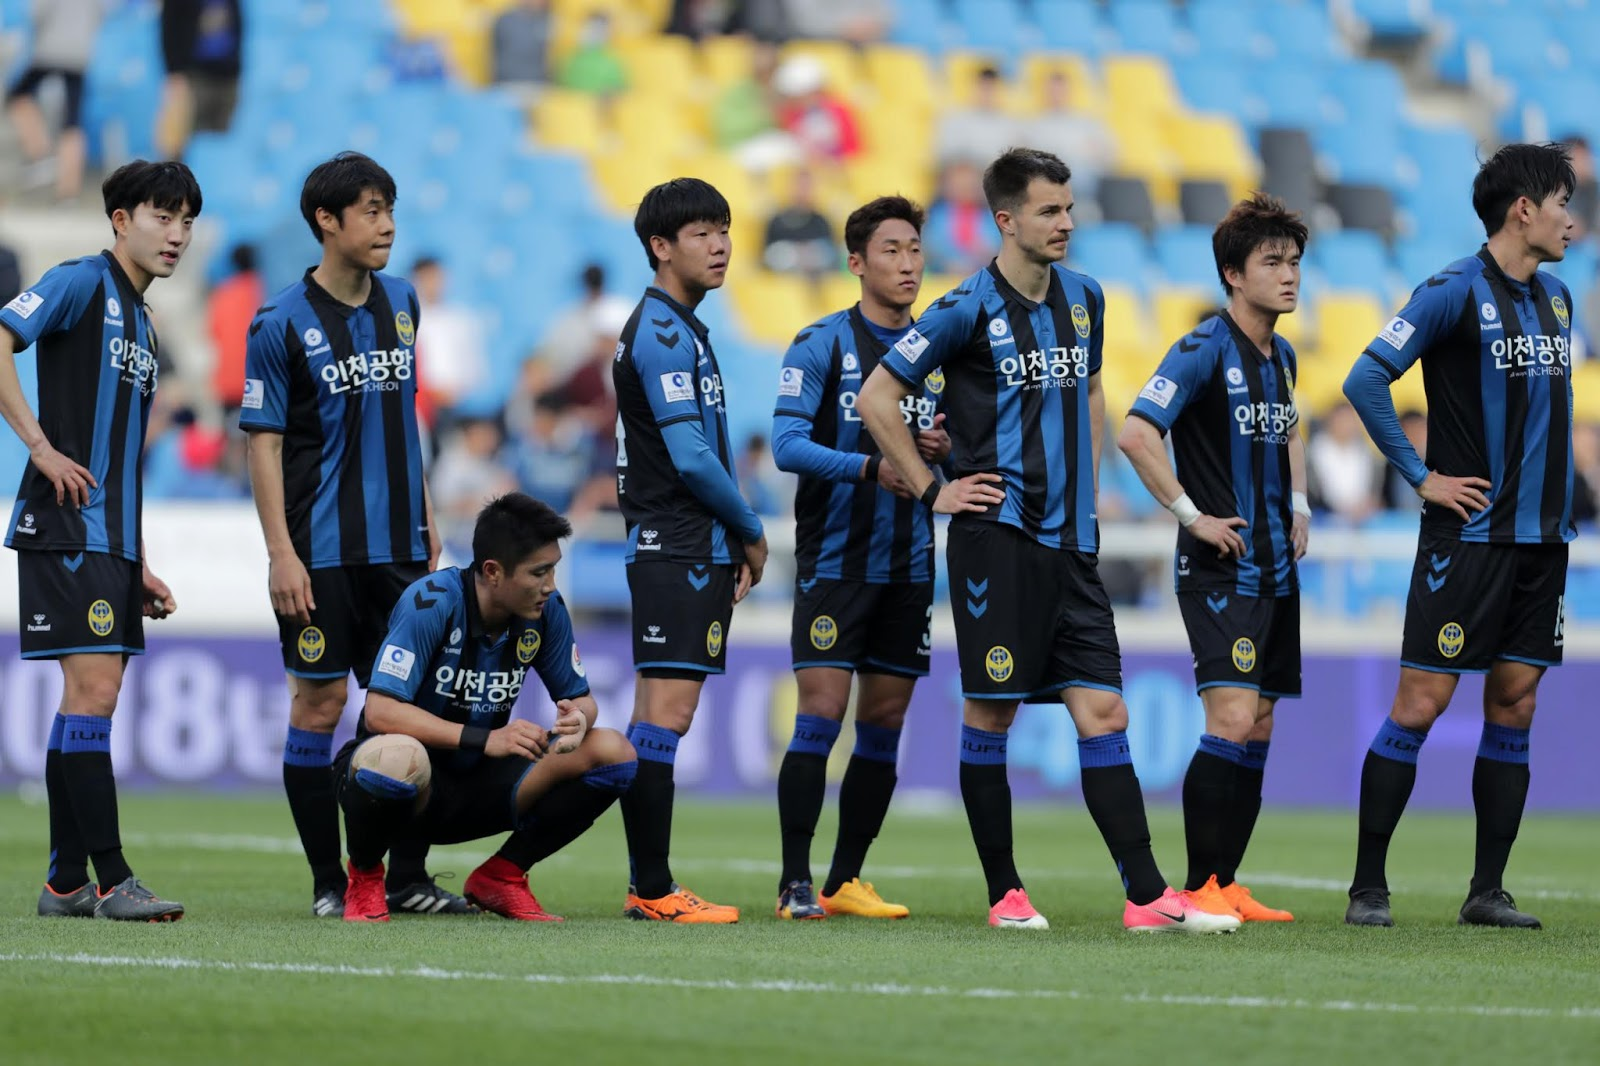 Preview: Incheon United Vs Ulsan Hyundai K League 1 Round 14